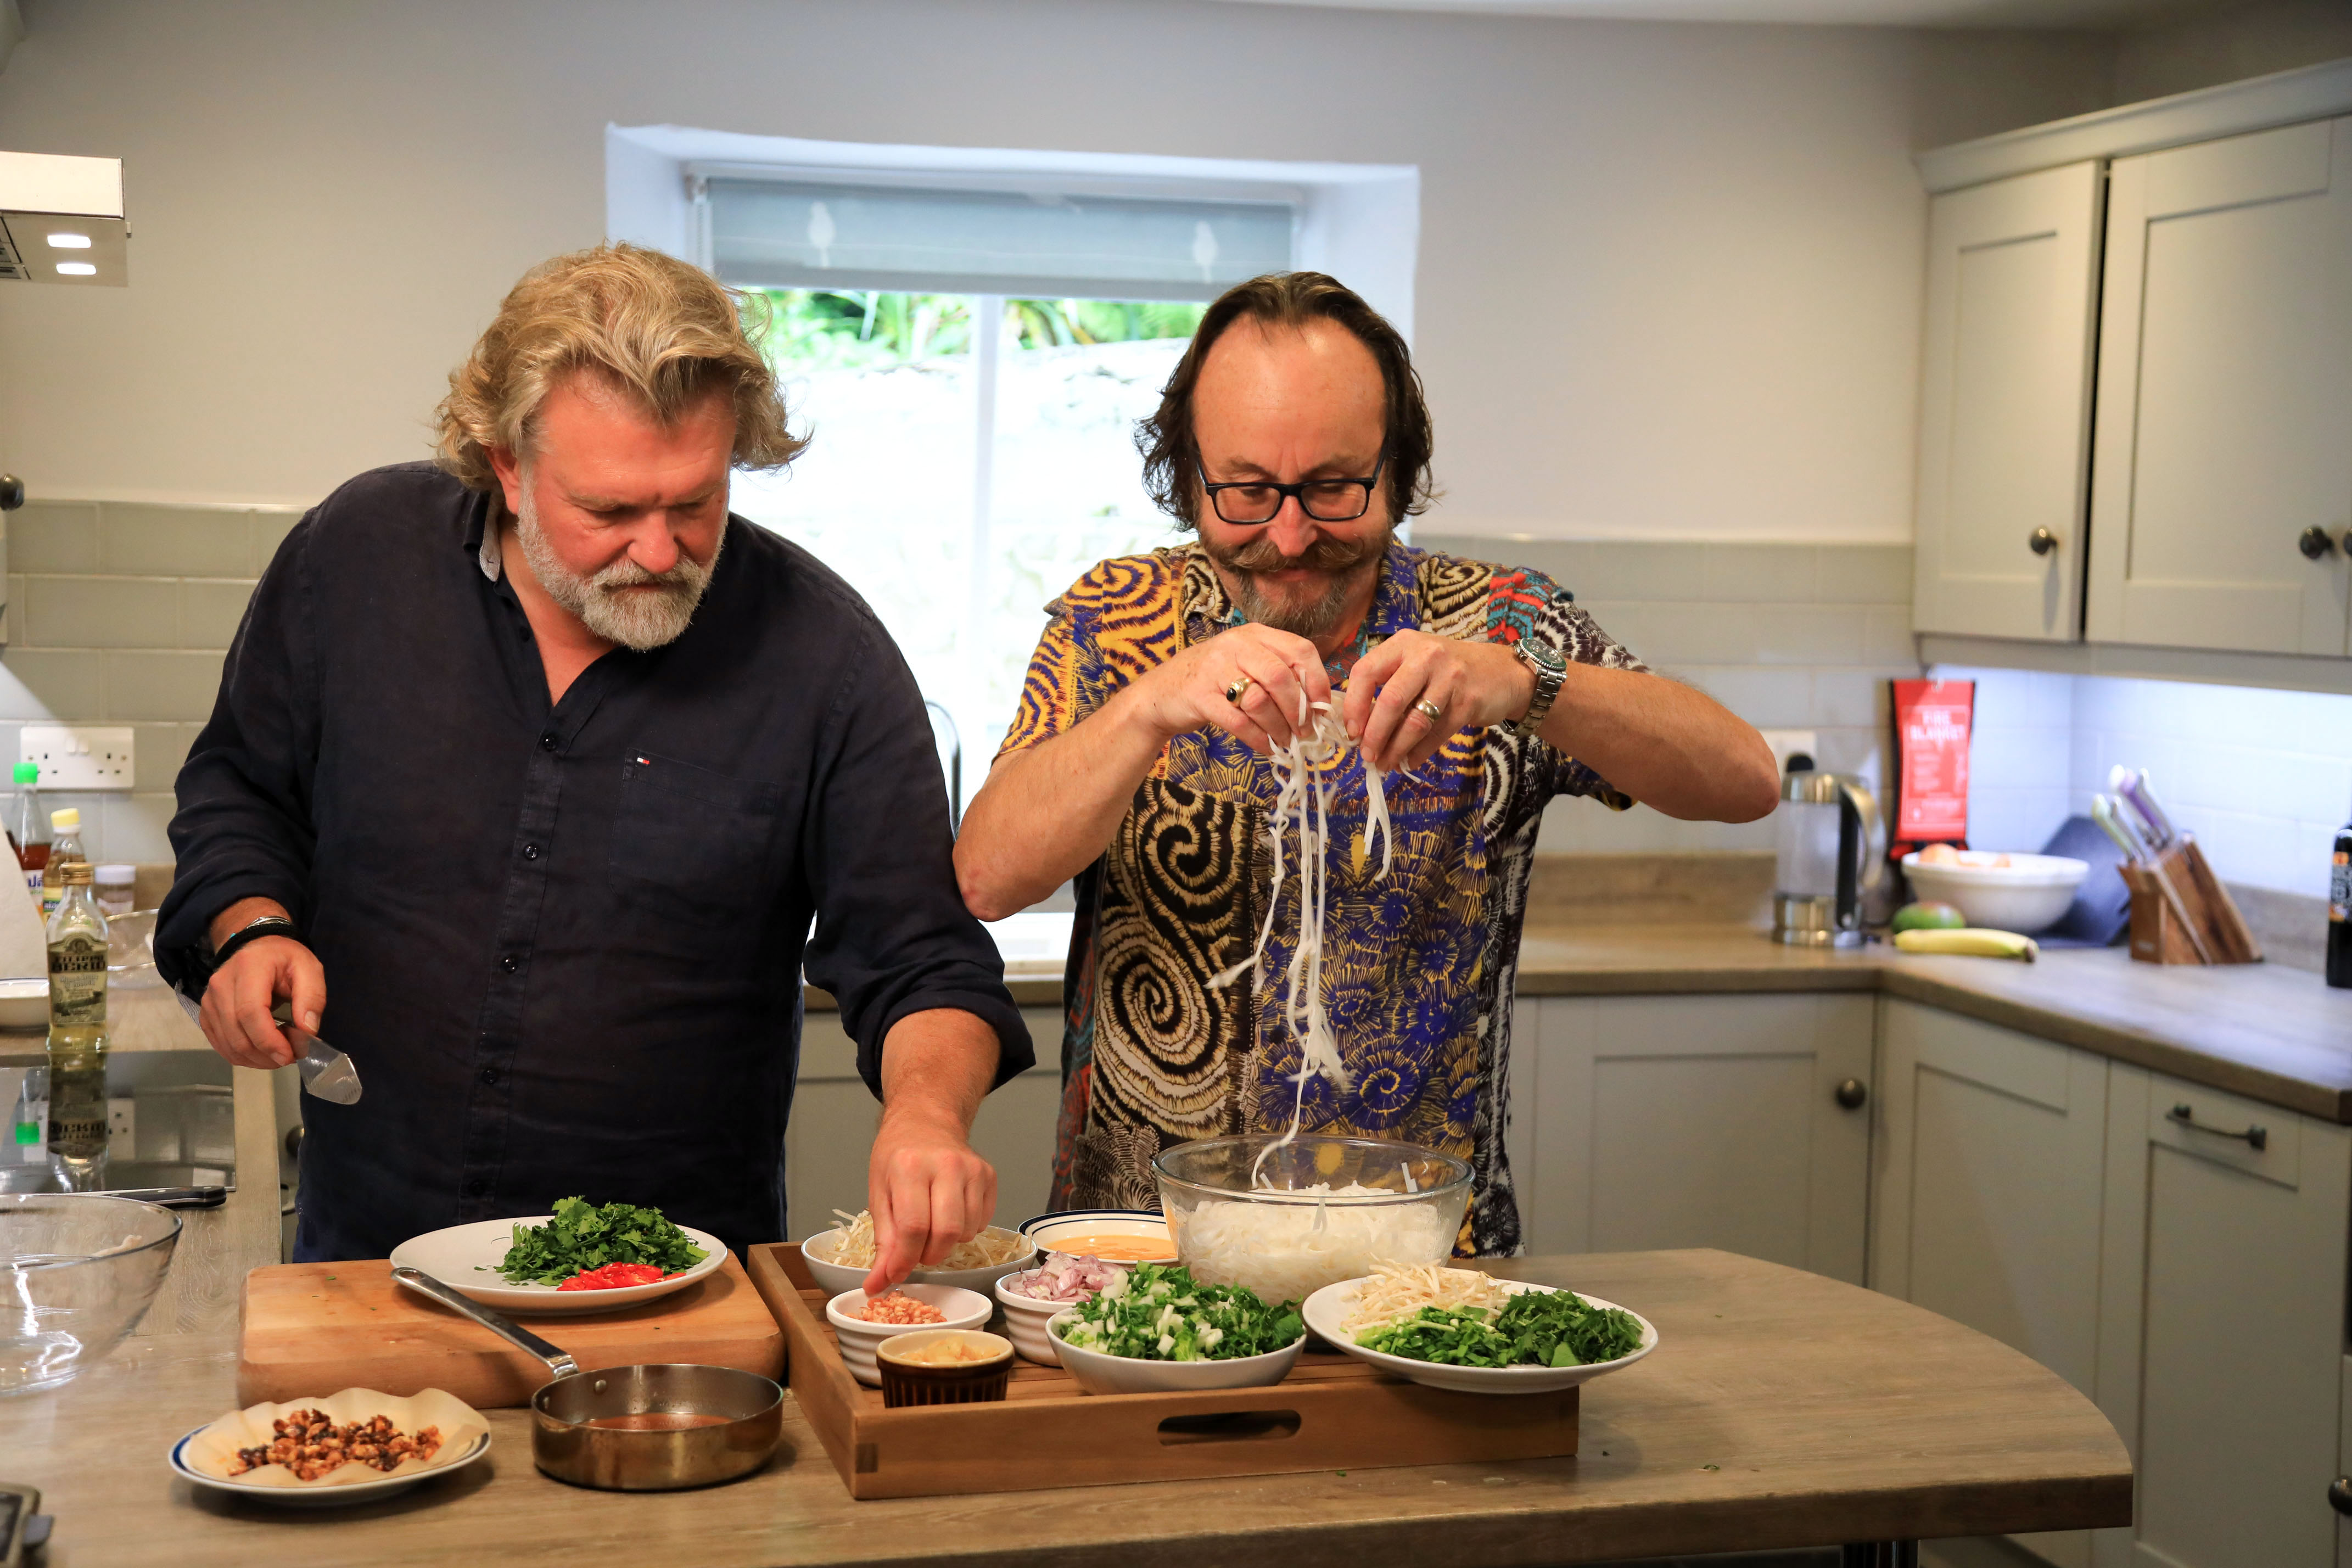 Doing what they do best...The Hairy Bikers in the kitchen.